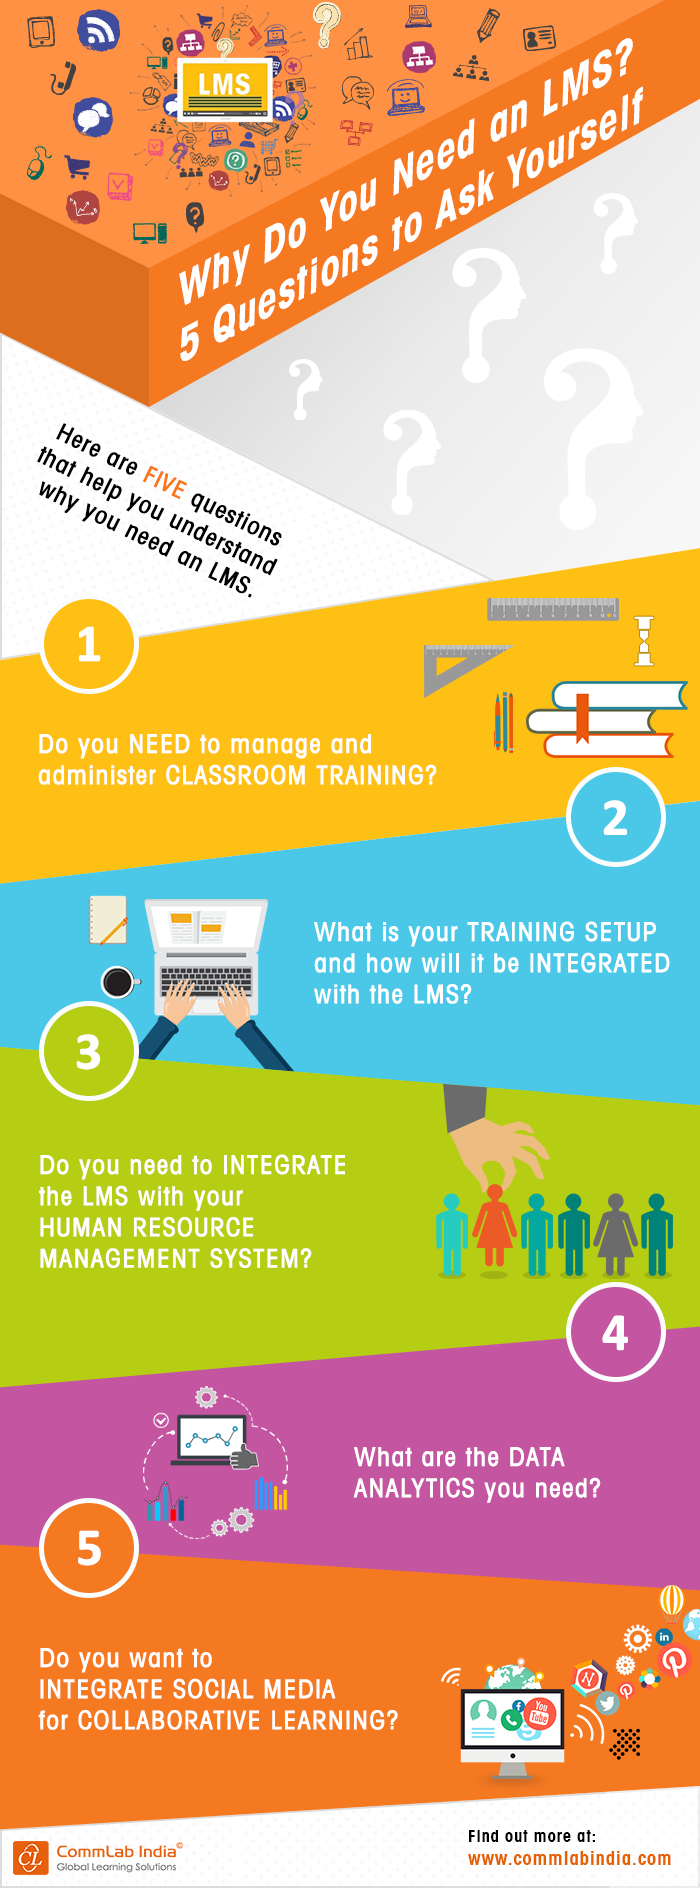 Why Do You Need an LMS? 5 Questions to Ask Yourself [Infographic]